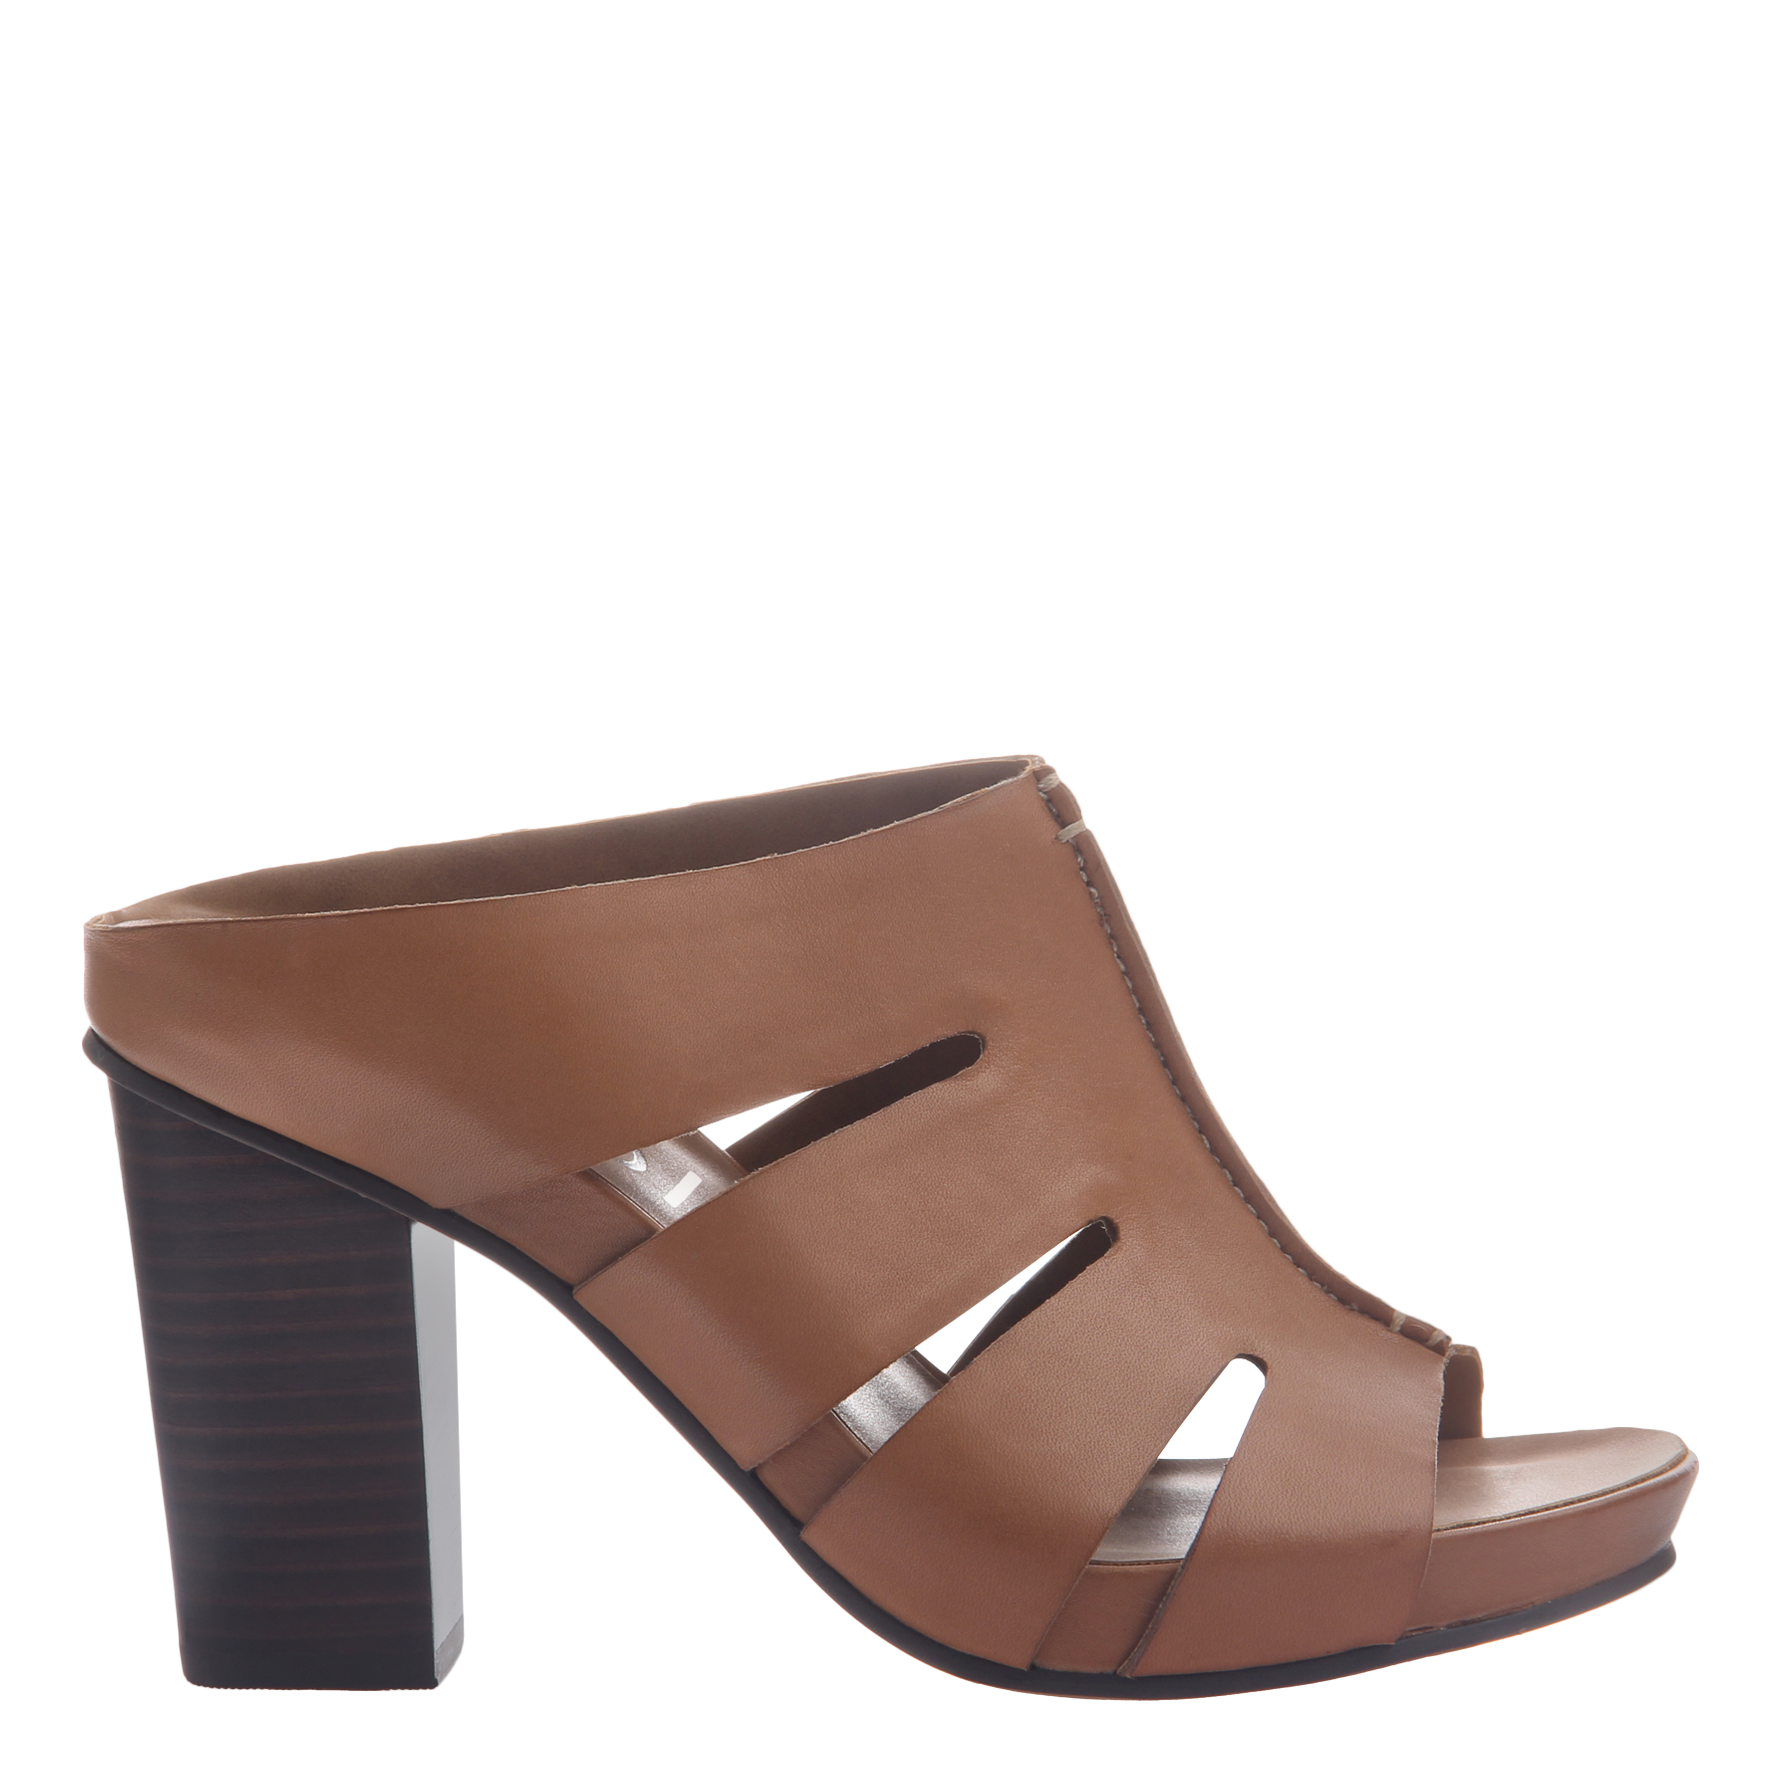 Nicole womens heeled sandal Delphine in brown leather side view